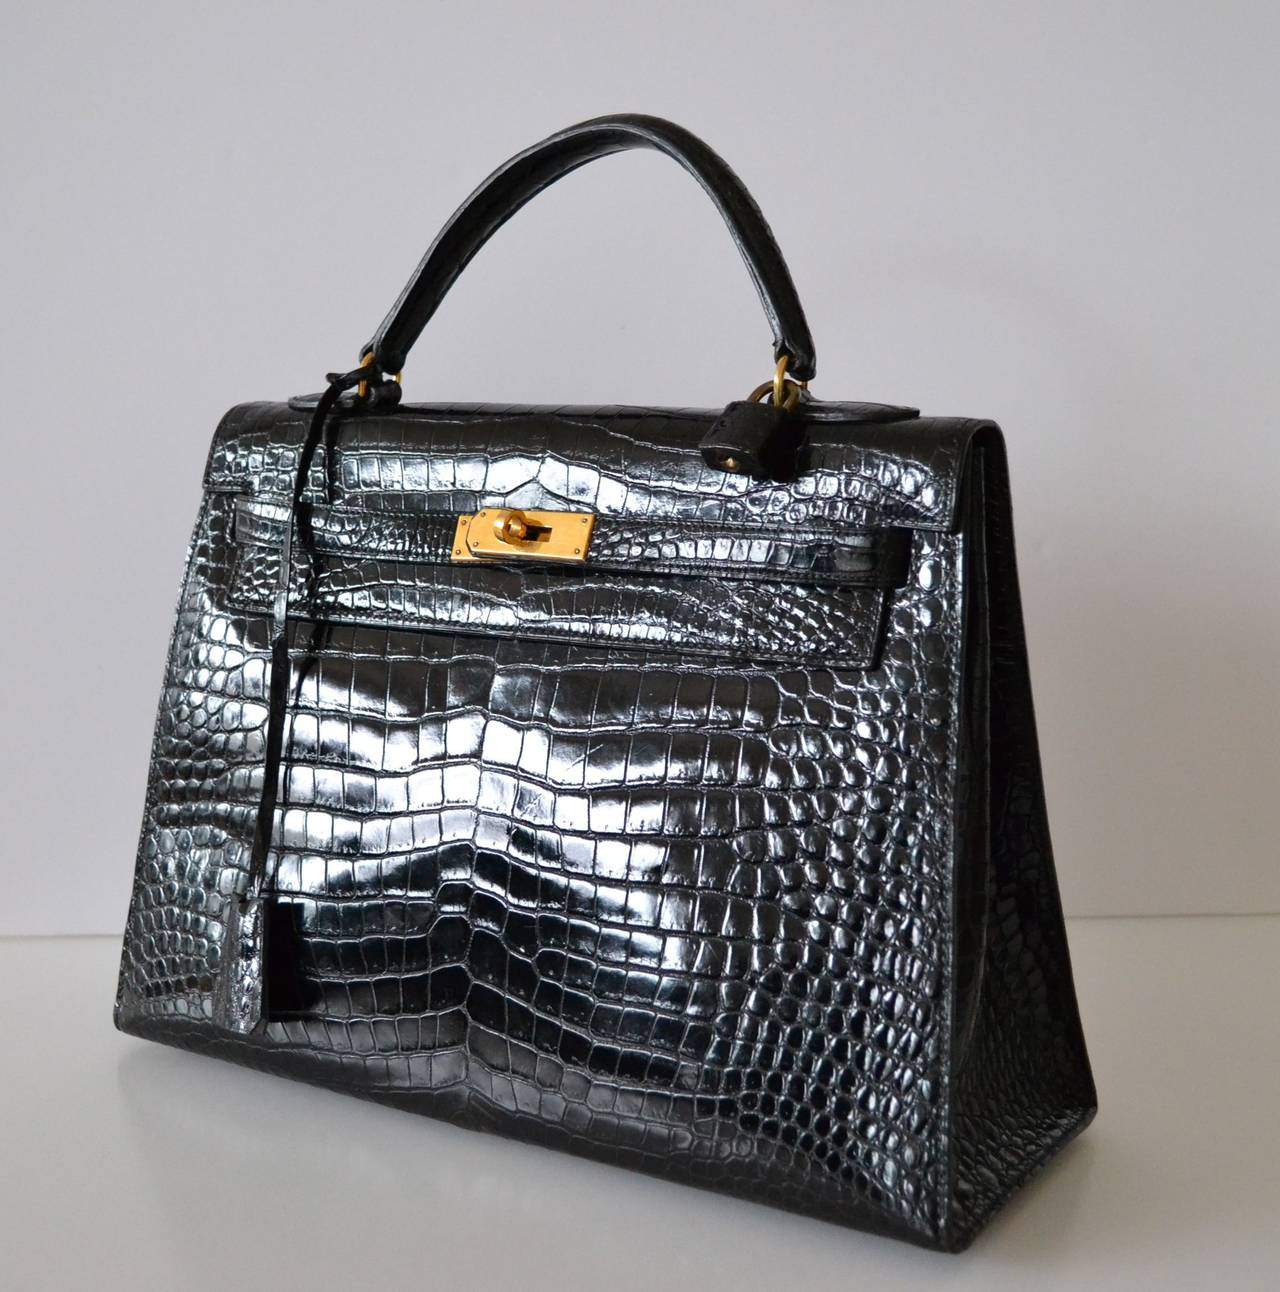 Hermes Kelly 32 Black crocodile Porosus at 1stdibs